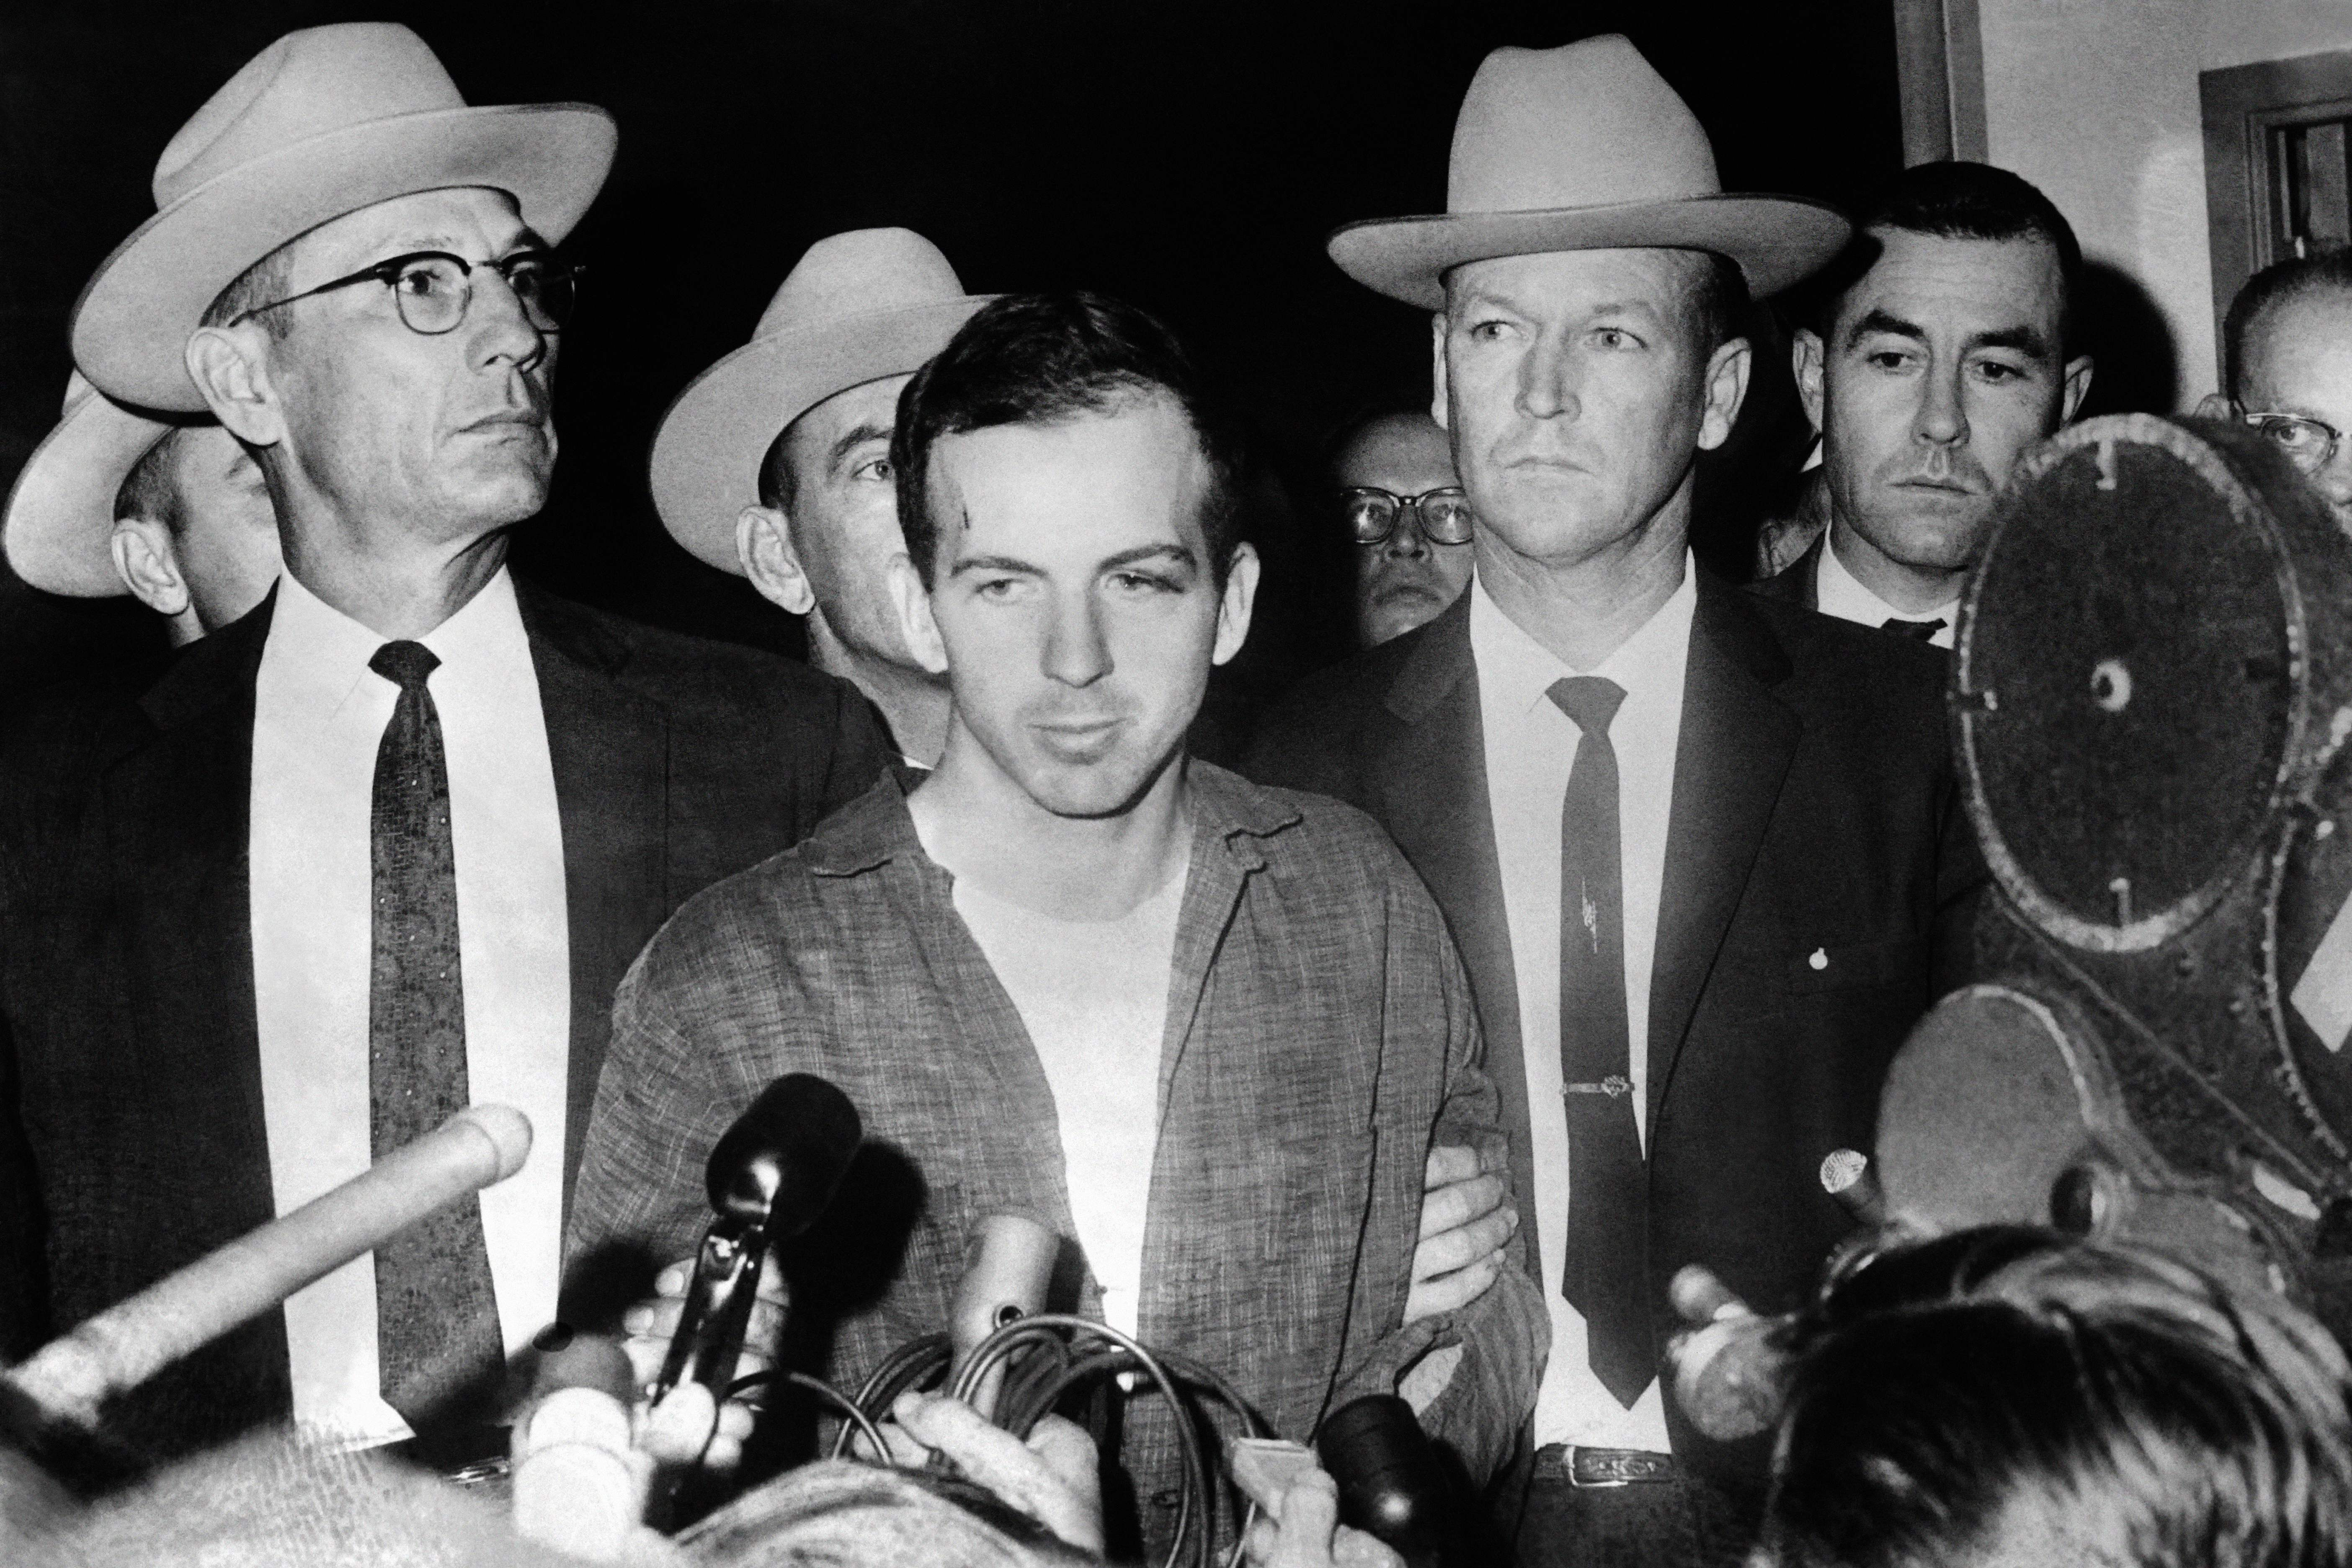 Picture dated 22 November 1963 of US President John F. Kennedy's murderer Lee Harvey Oswald during a press conference after his arrest in Dallas. Lee Harvey Oswald was killed by Jack Ruby on 24 November on the eve of Kennedy's burial.